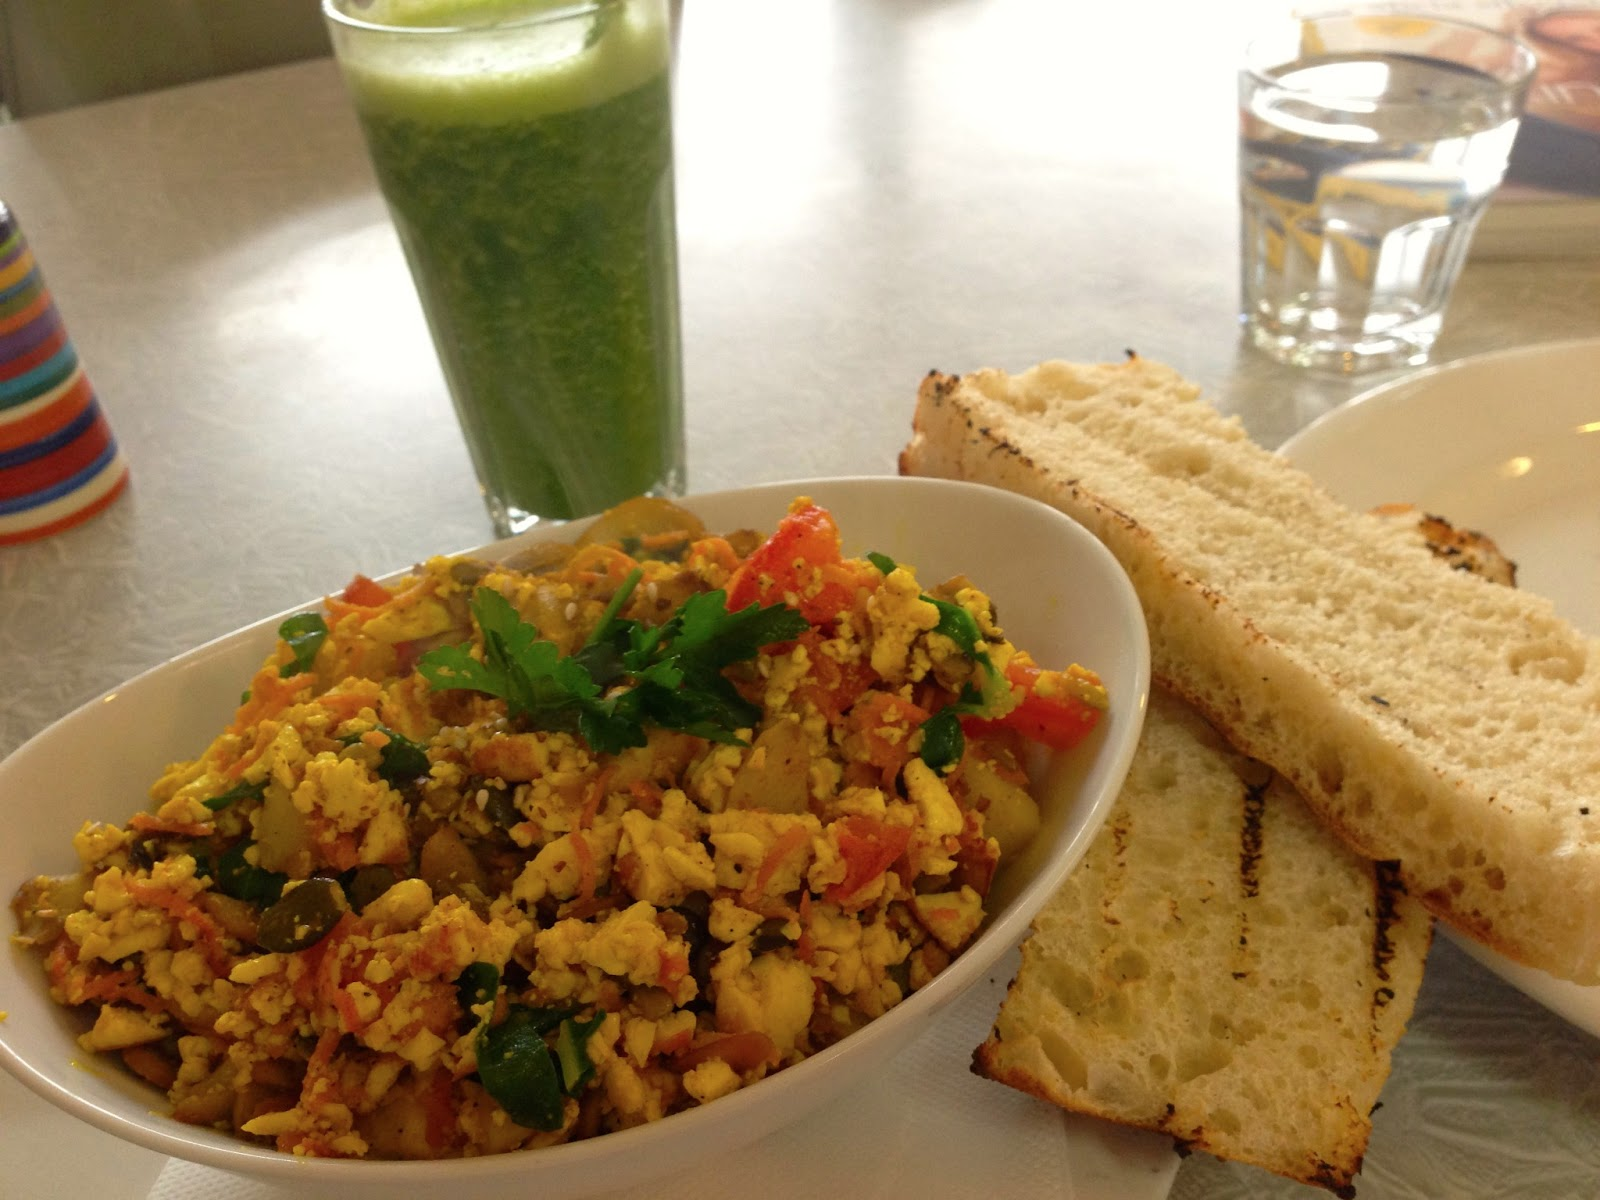 Tofu Scramble, green juice and turkish bread - Bliss Organic Cafe, Adelaide